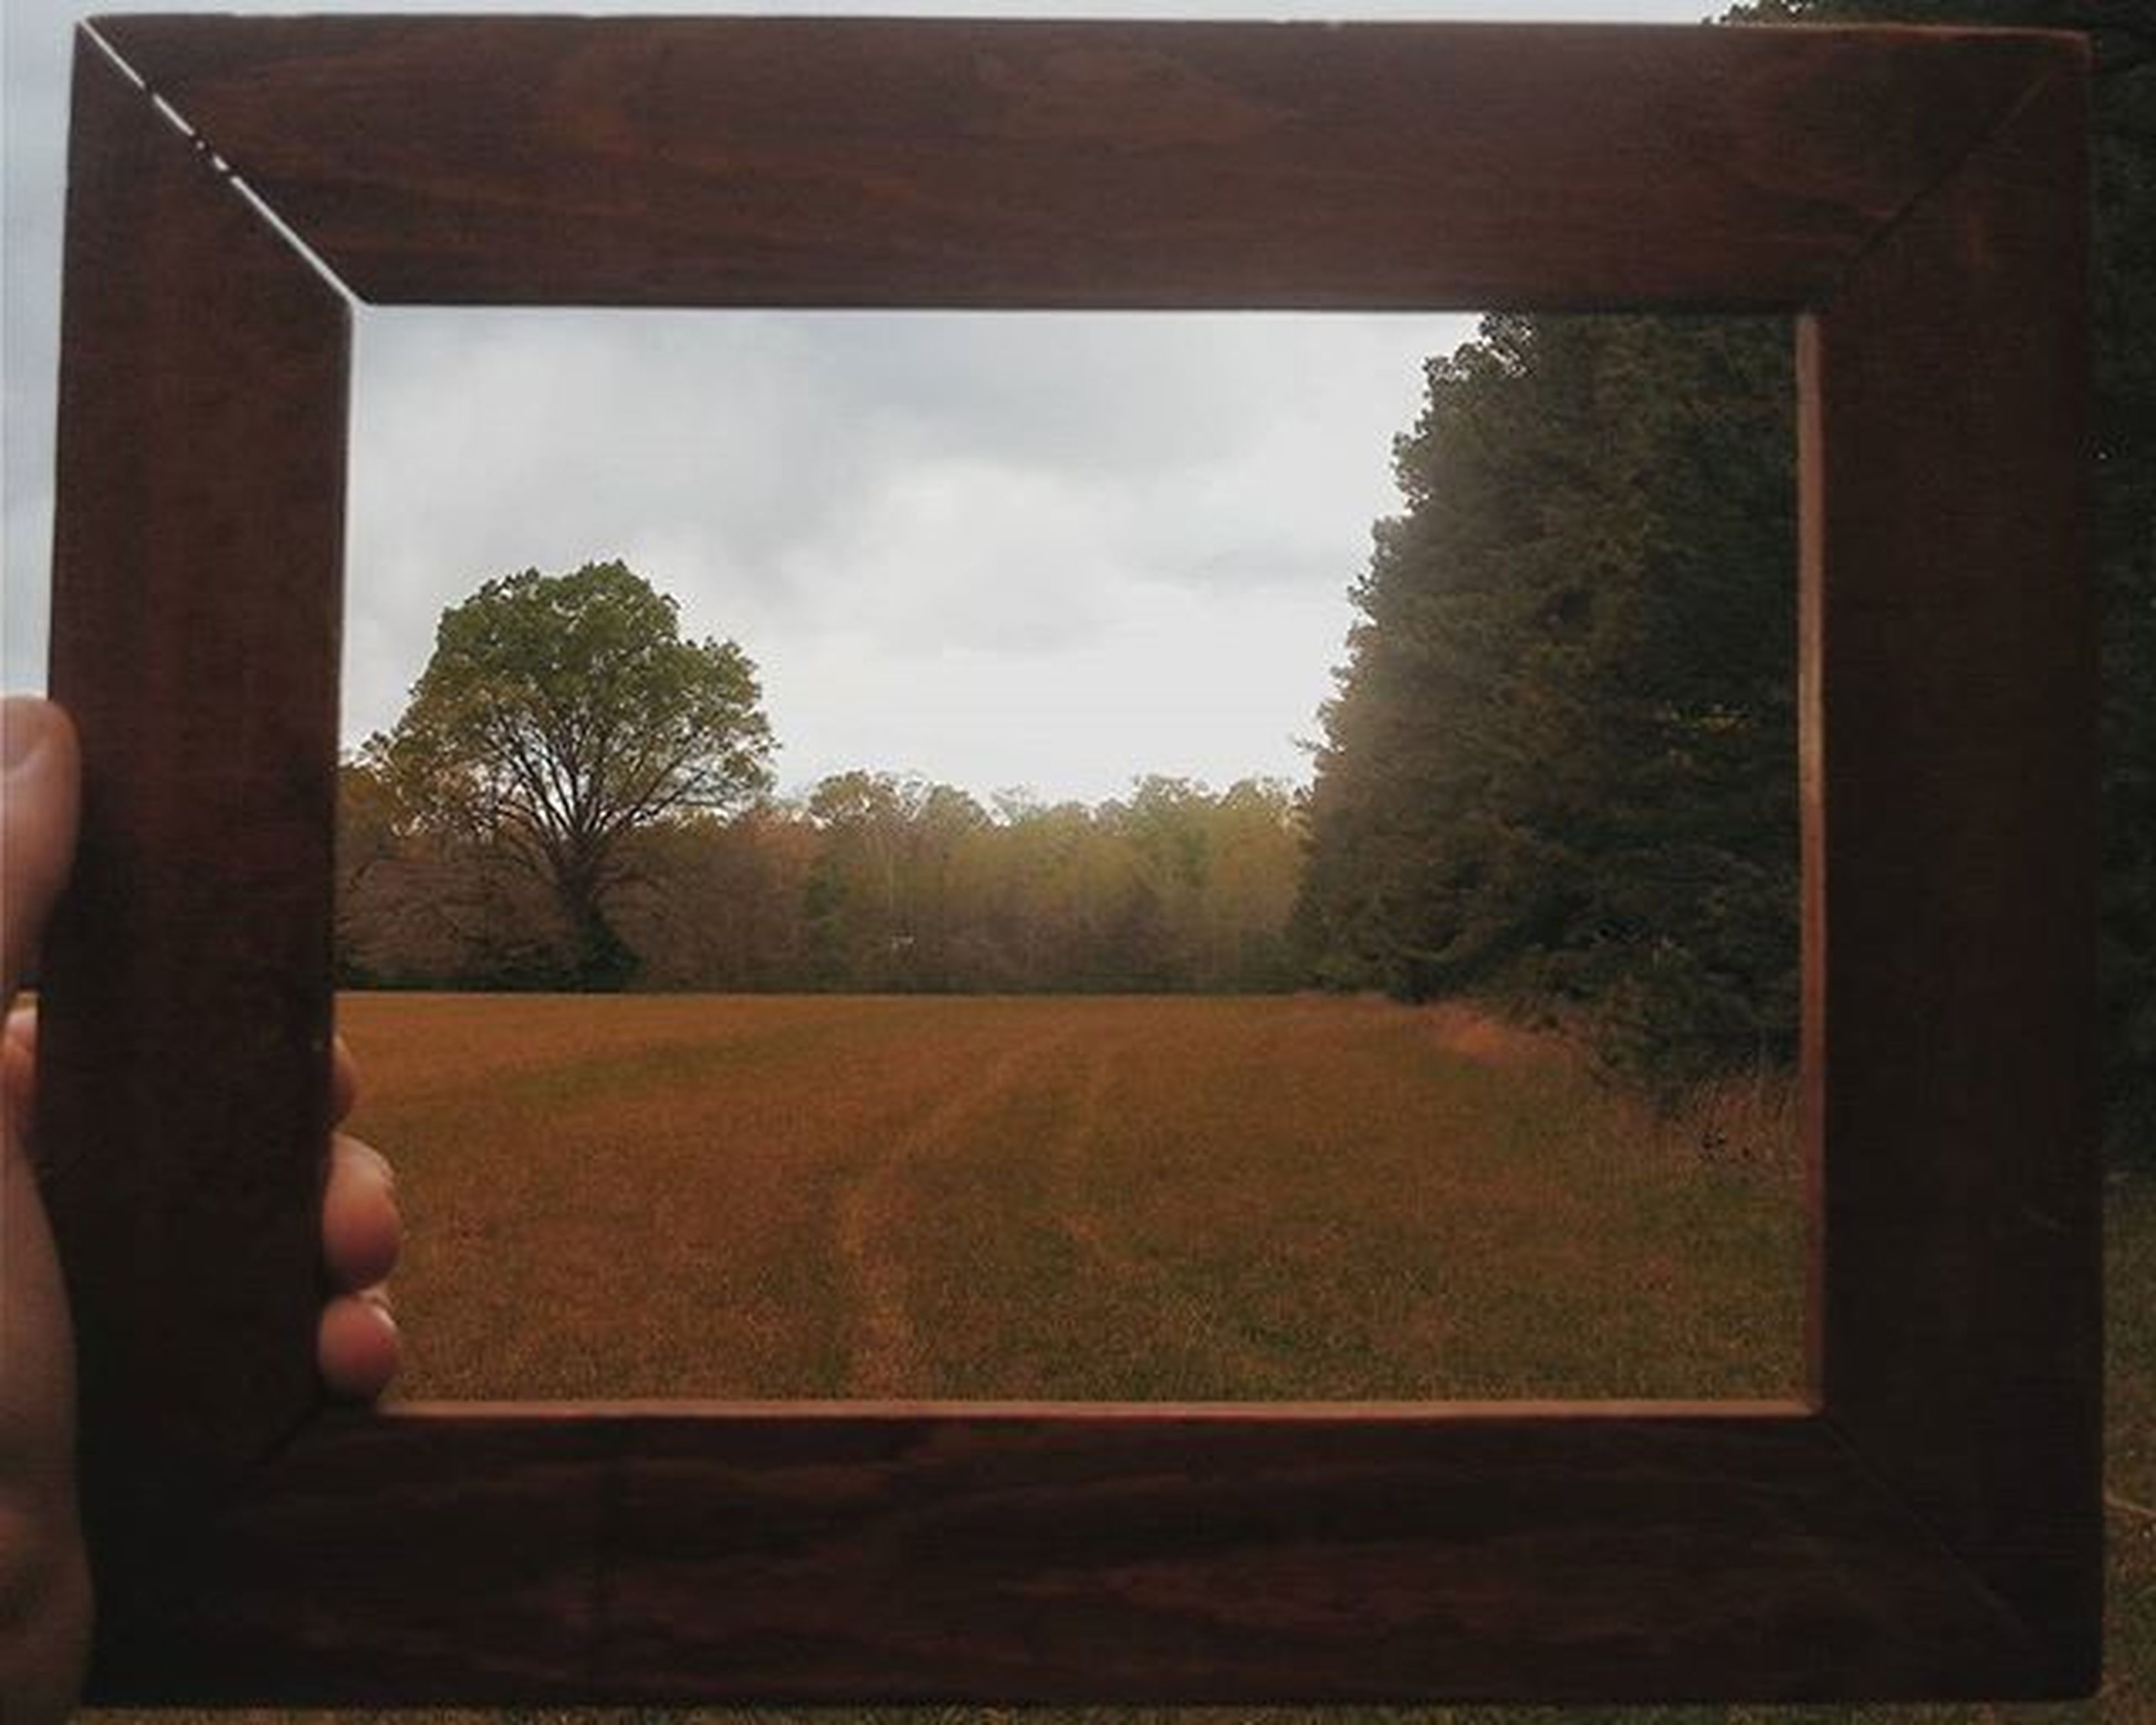 tree, sky, field, landscape, grass, nature, tranquility, growth, tranquil scene, cloud - sky, day, indoors, cloud, beauty in nature, rural scene, lifestyles, unrecognizable person, scenics